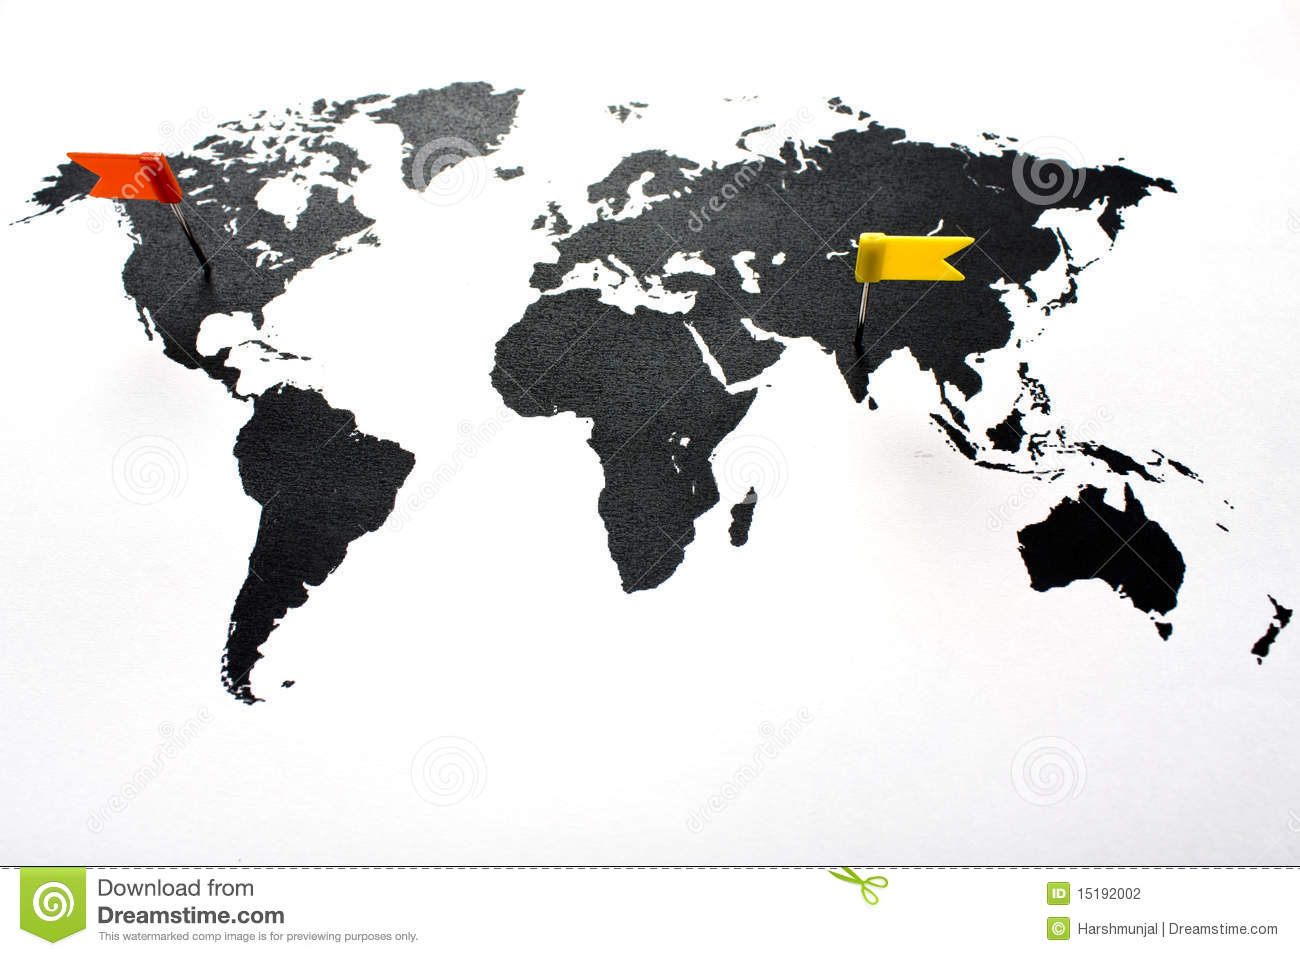 India And Usa Map on russia and usa map, india and money, solomon islands and usa map, somalia and usa map, japan and usa map, england and usa map, ireland and usa map, germany and usa map, colombia and usa map, iceland and usa map, switzerland and usa map, mexico and usa map, cuba and usa map, belize and usa map, canada and usa map, egypt and usa map, spain and usa map, denmark and usa map, india and usa flag, latin america and usa map,